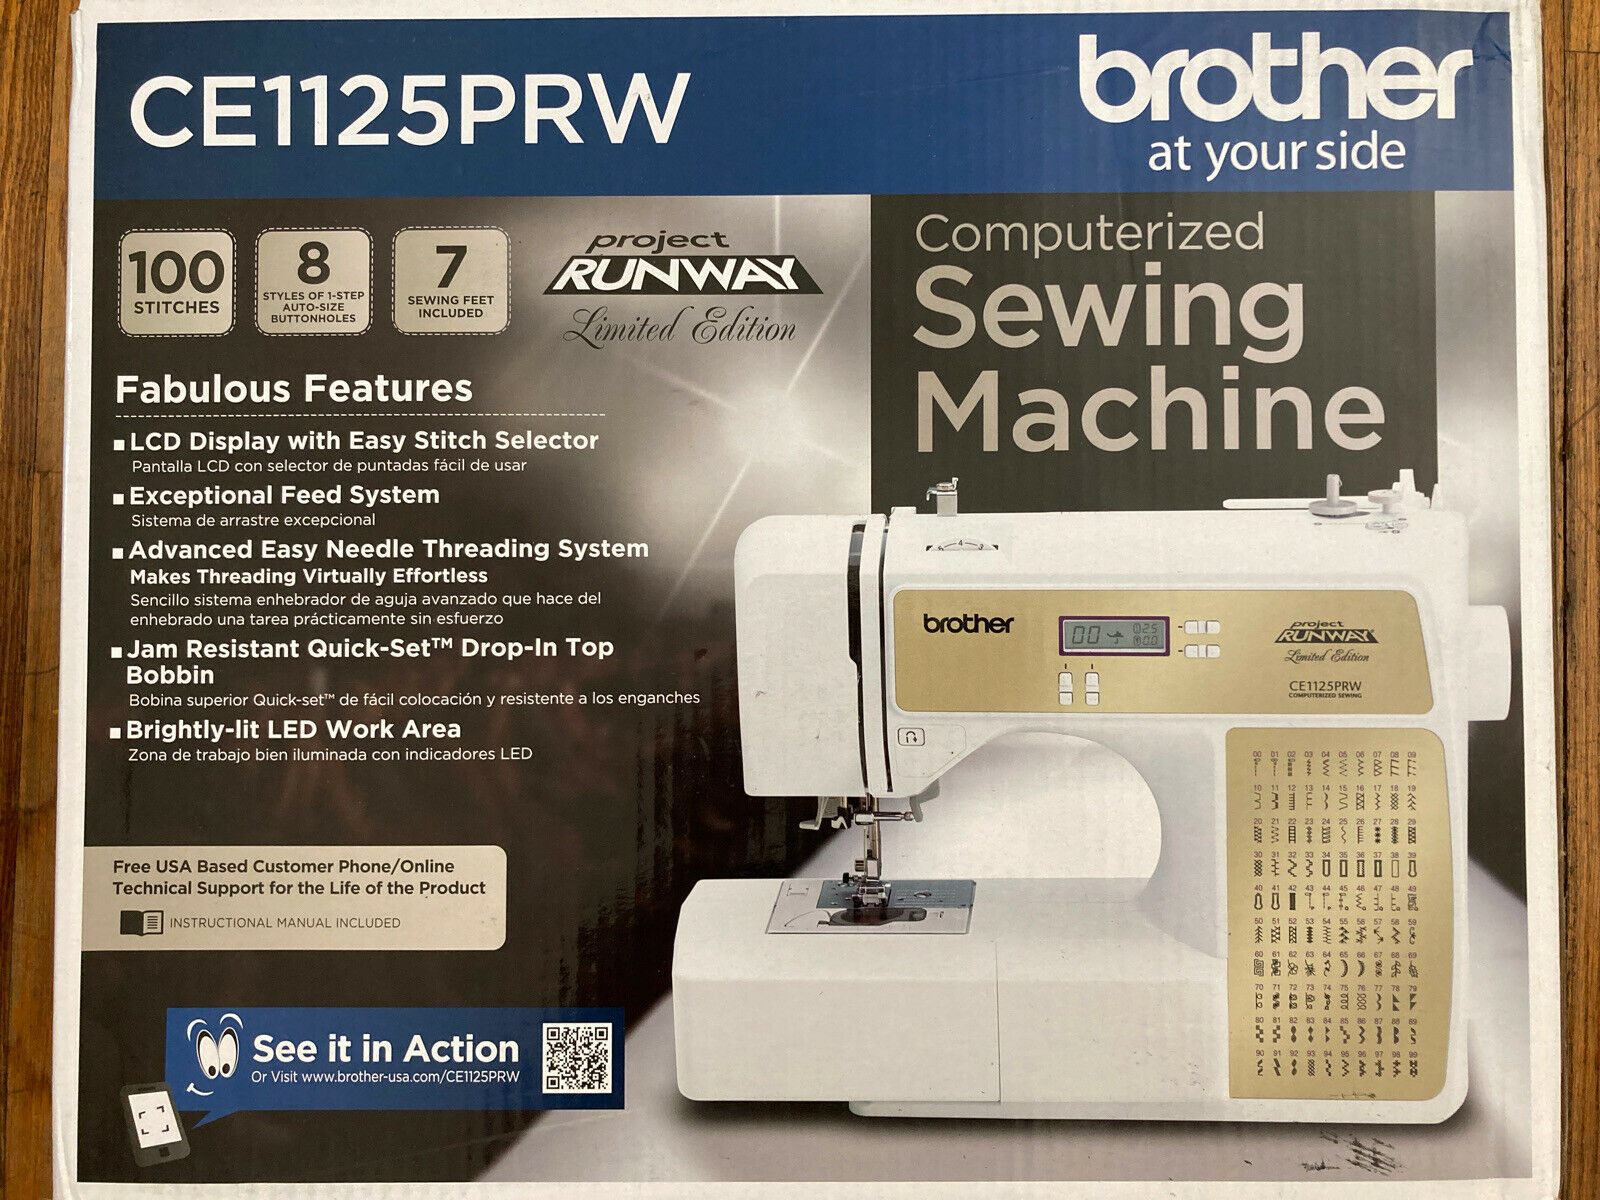 s l1600 - NEW Brother CE1125PRW Computerized 100-Stitch Project Runway Sewing Machine